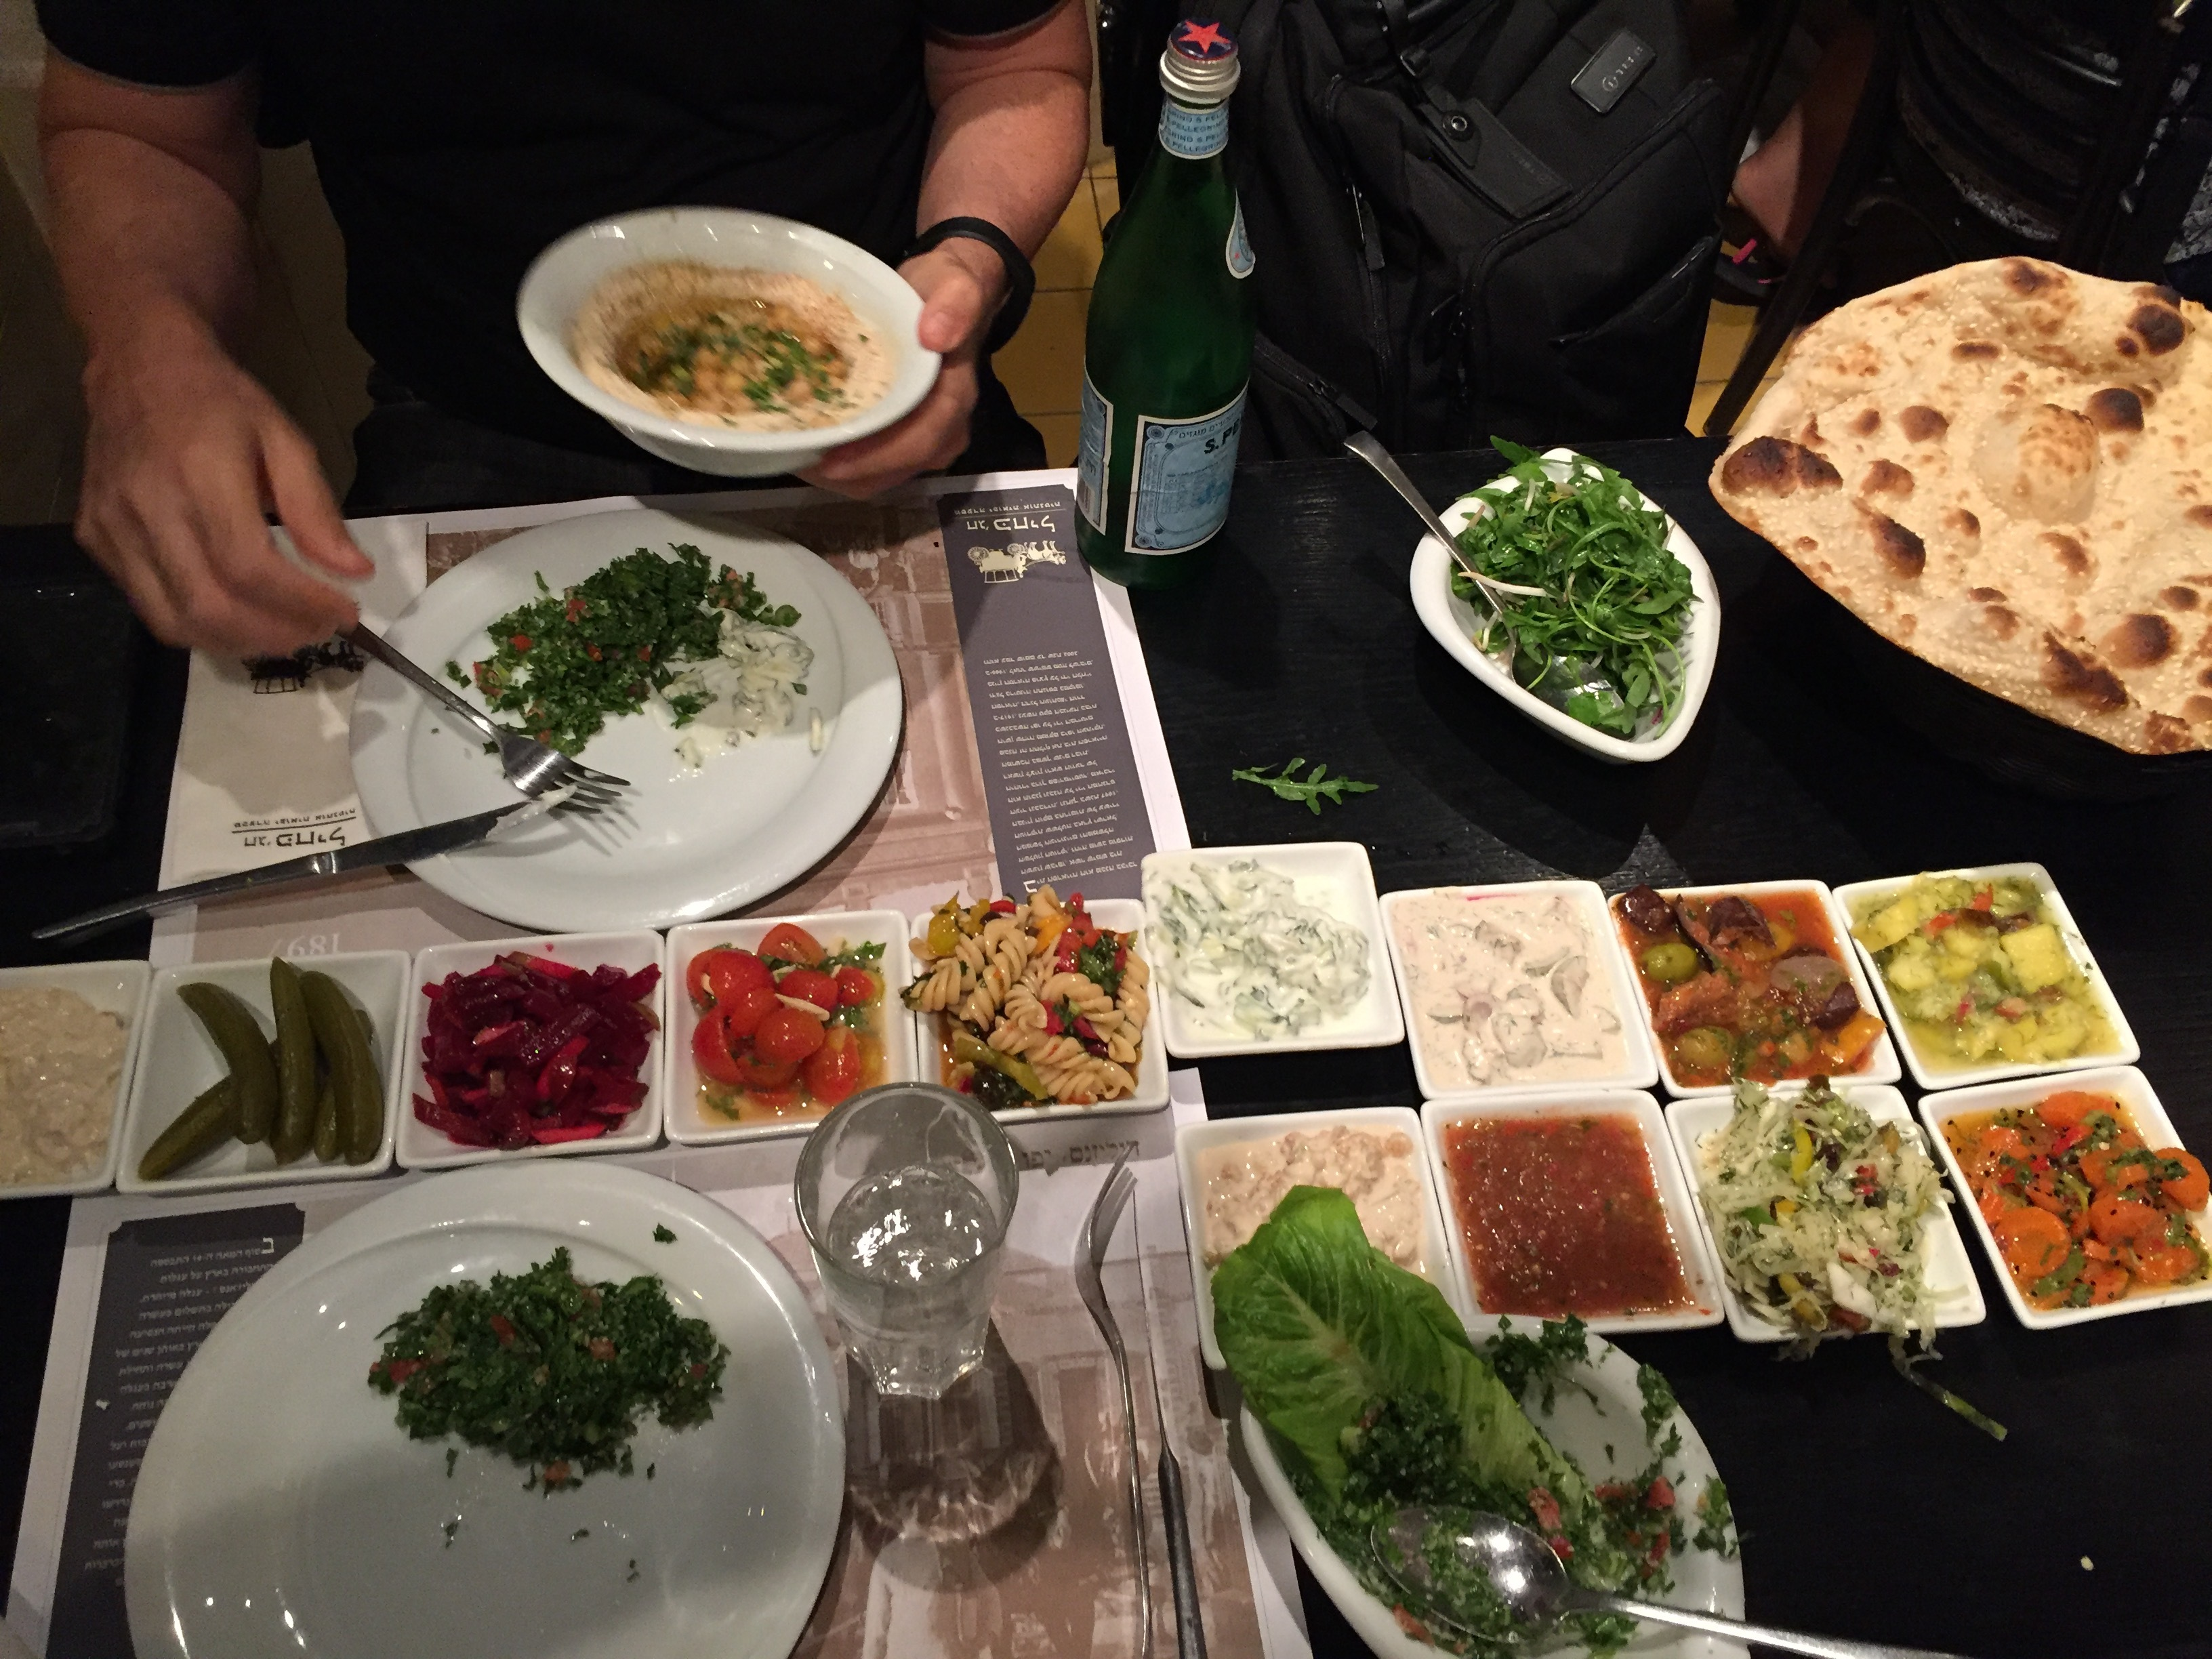 Arabian food overload in Jaffa Israel